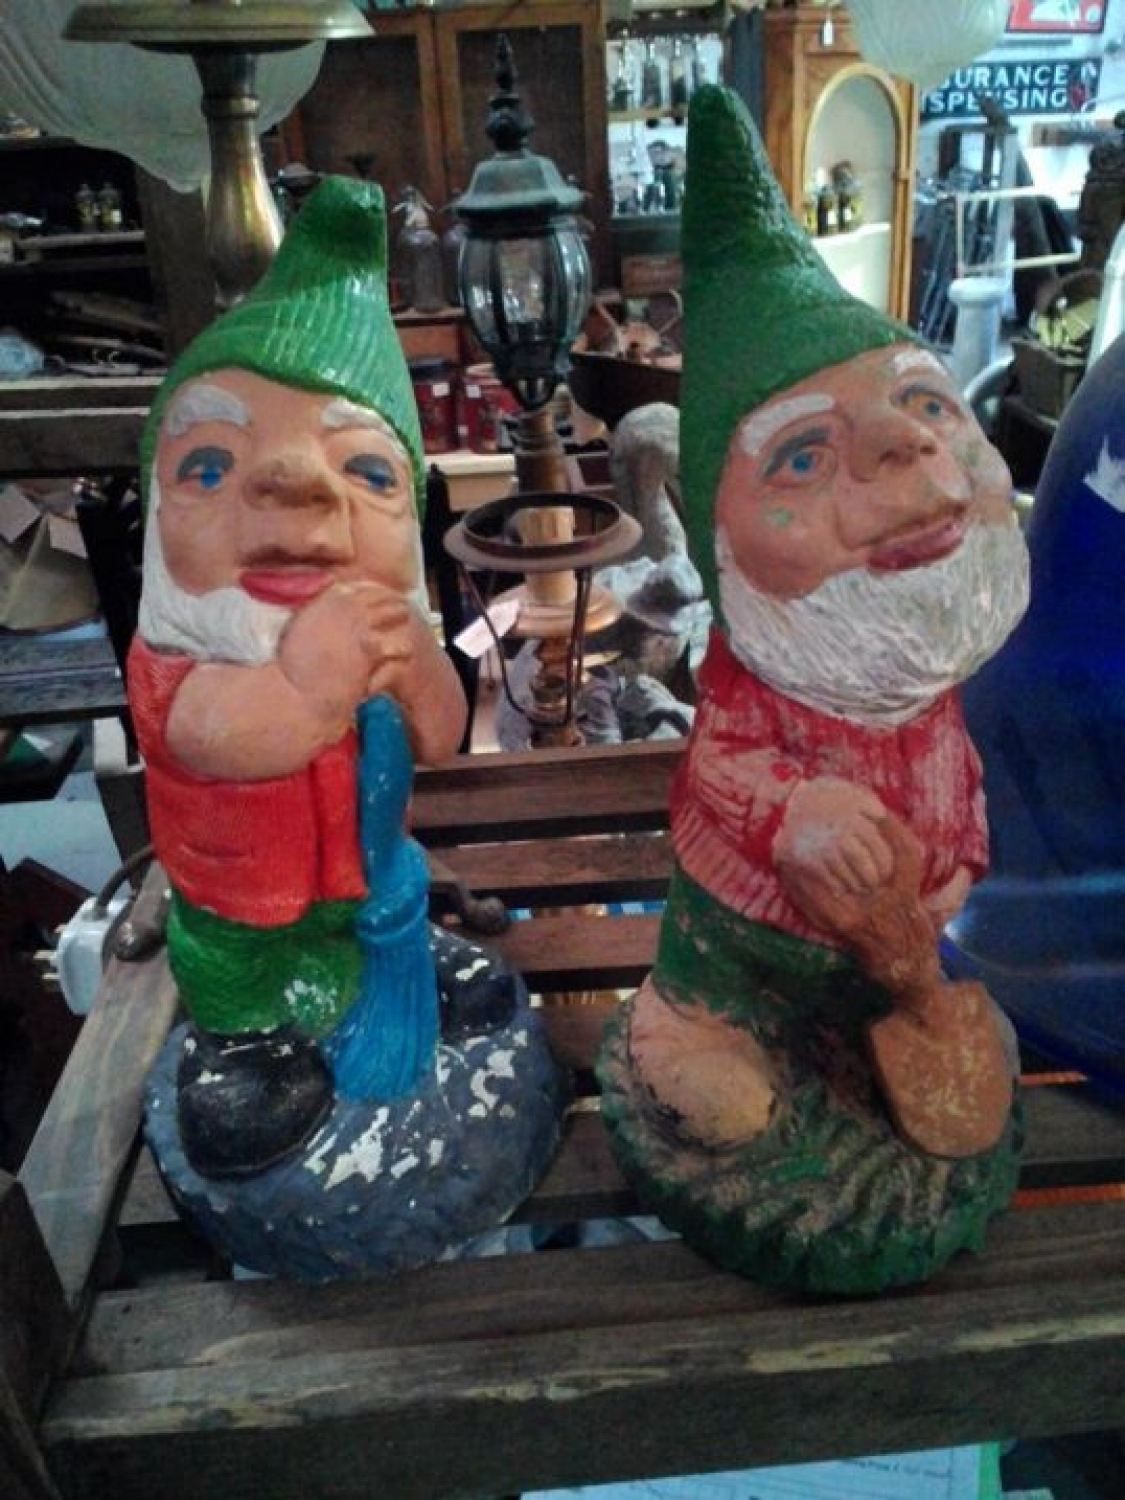 Colourful Cheeky Garden Gnomes